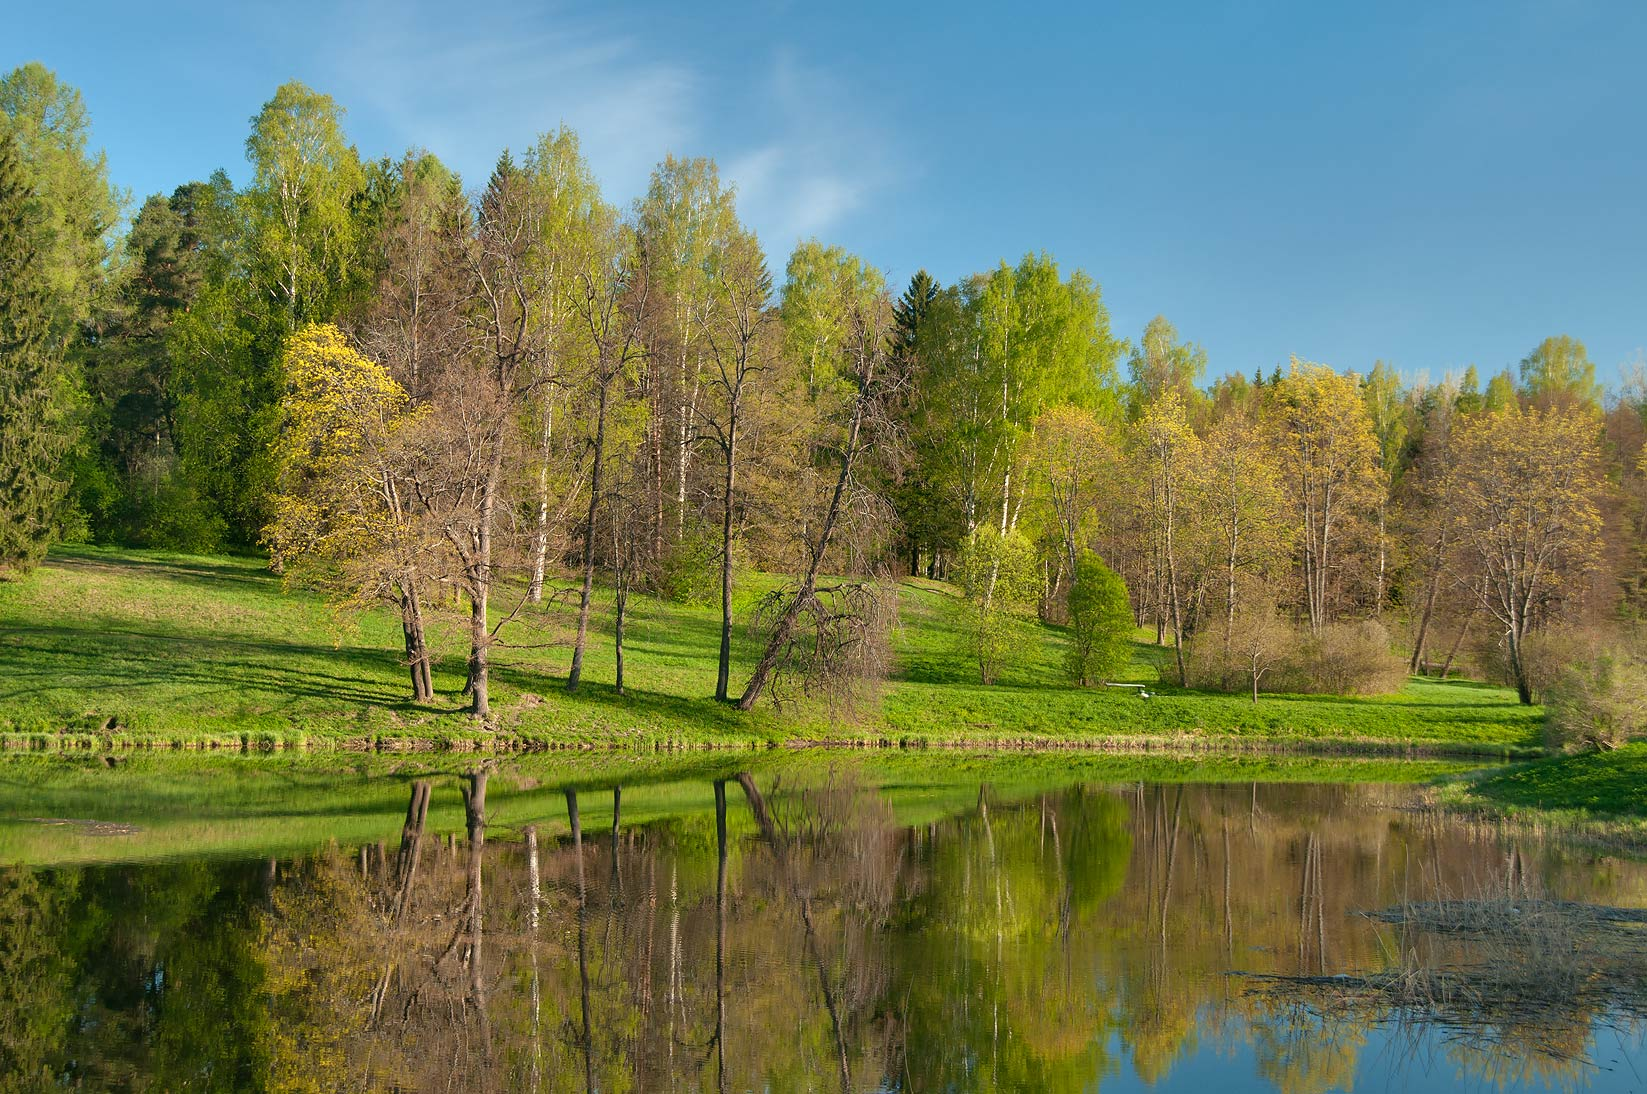 Viskontiev Pond of Slavyanka River in Pavlovsk Park, suburb of St.Petersburg. Russia